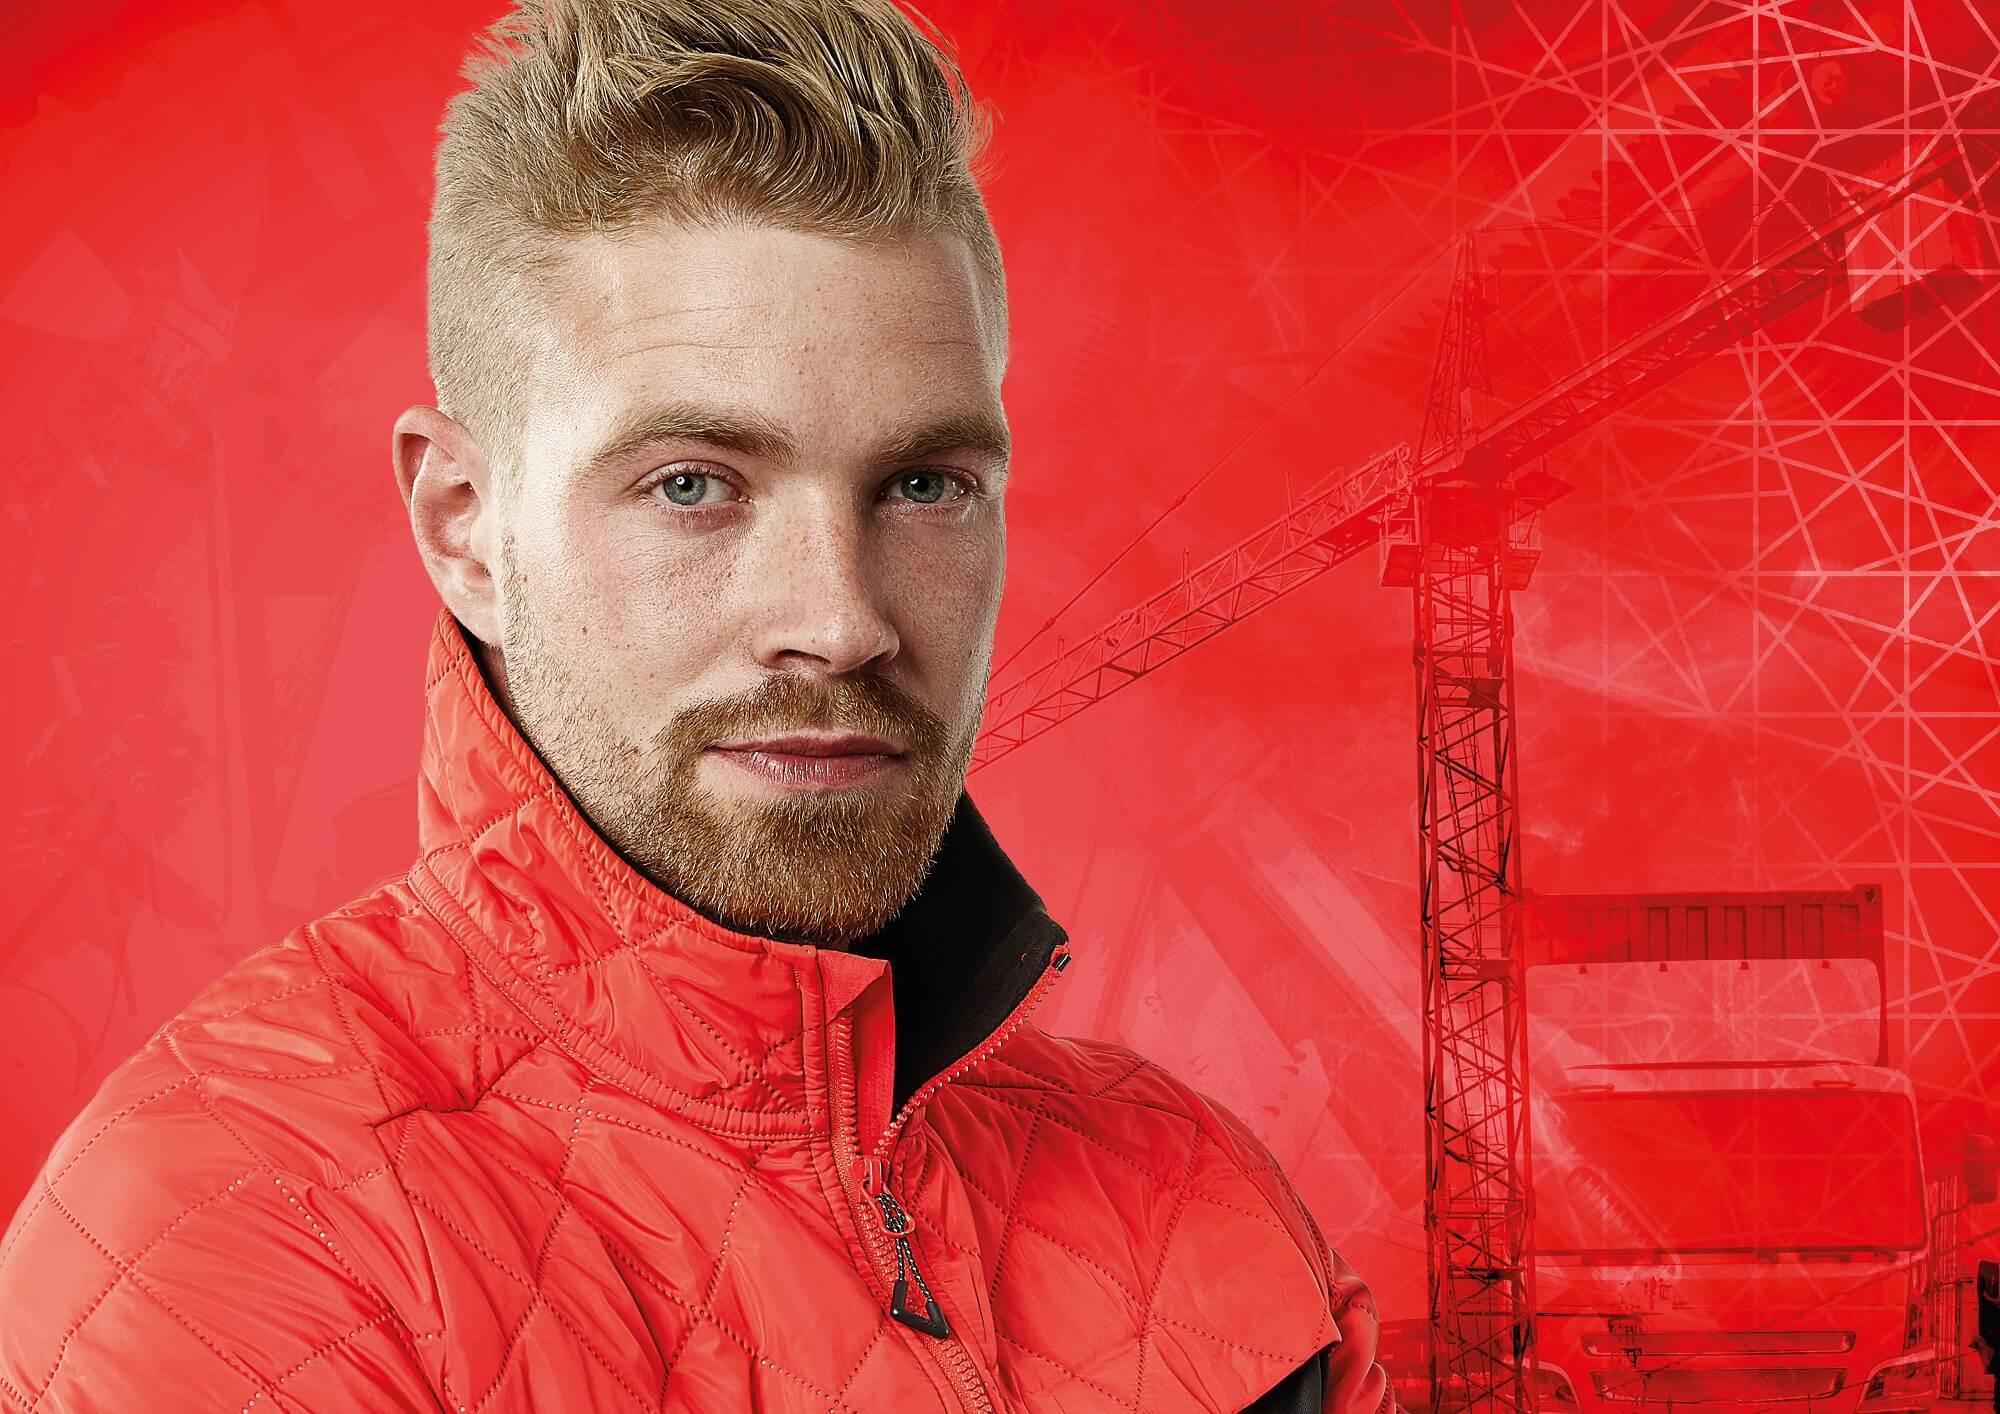 Homme - MASCOT® ACCELERATE - Rouge